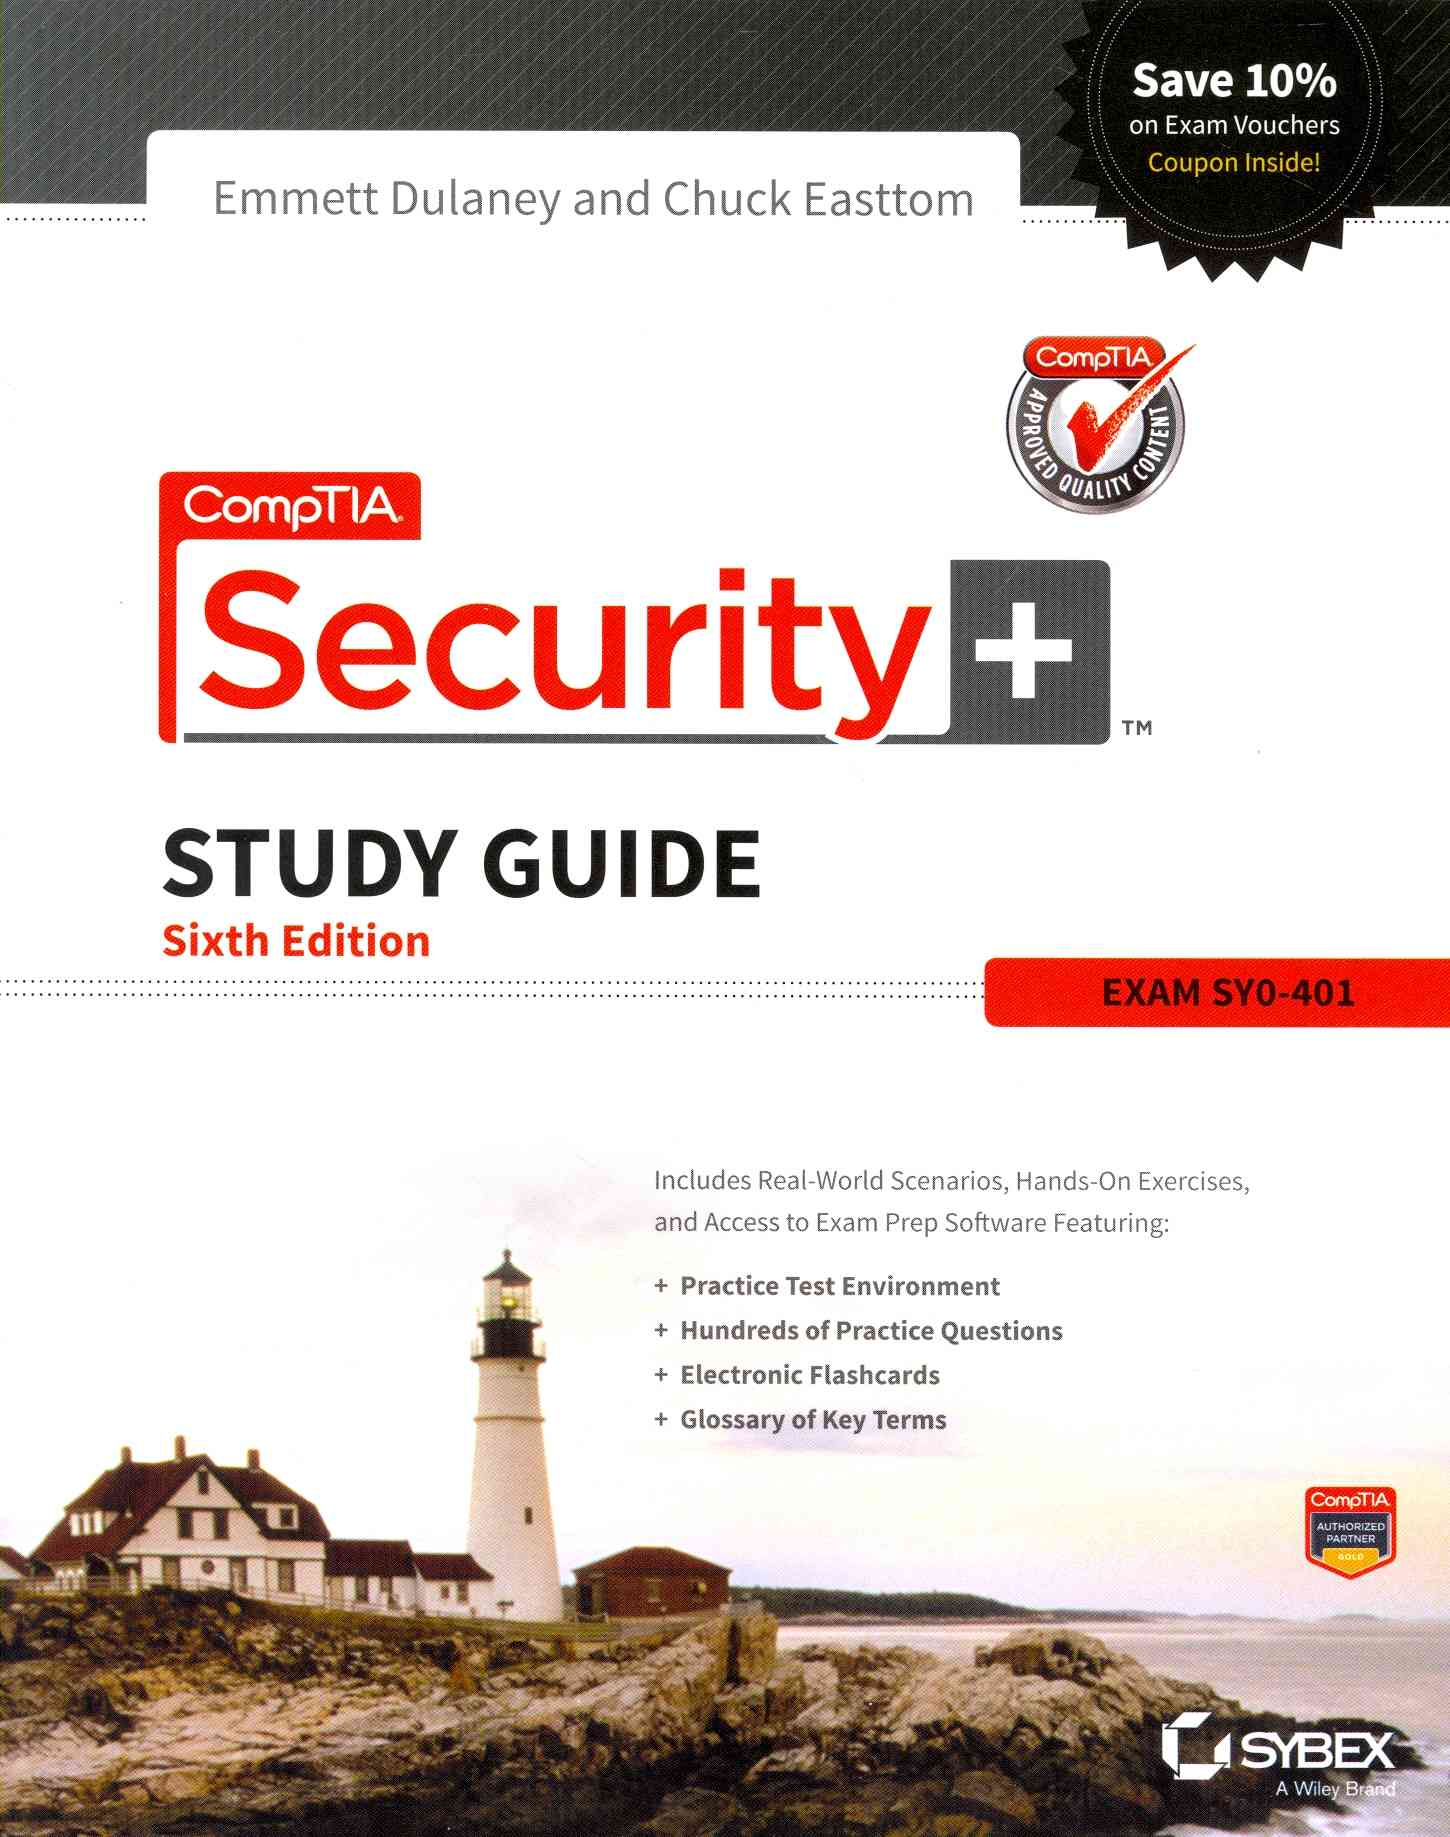 Comptia Security + Study Guide By Dulaney, Emmett/ Easttom, Chuck